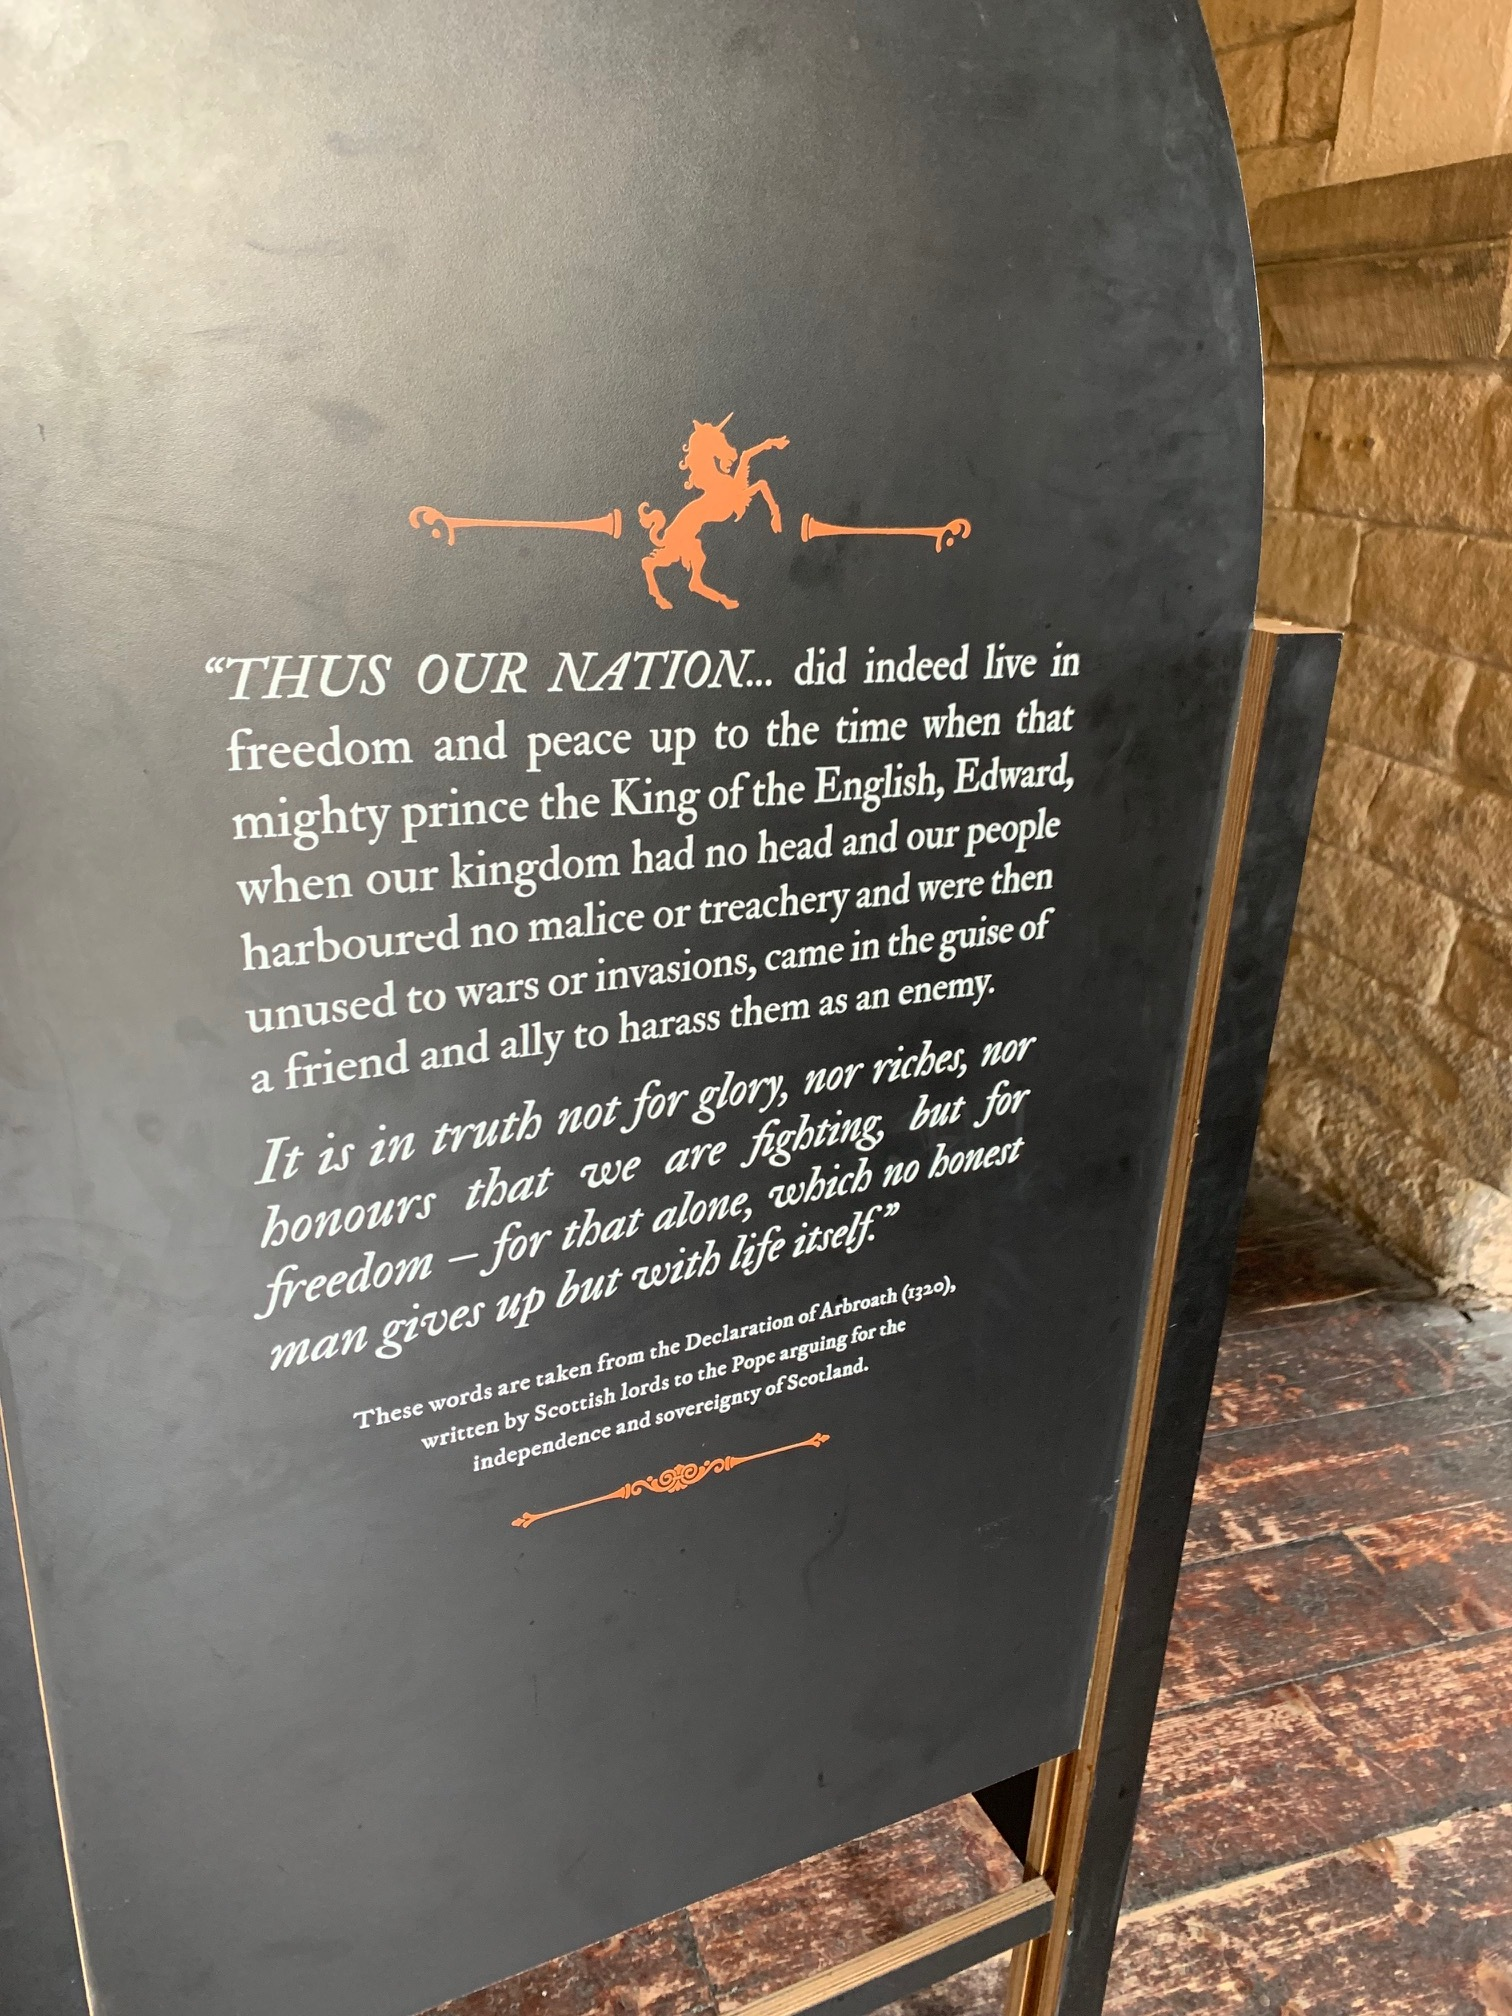 Interpretative signage at The Castle in Newcastle upon Tyne. Photo by Gina Caison.